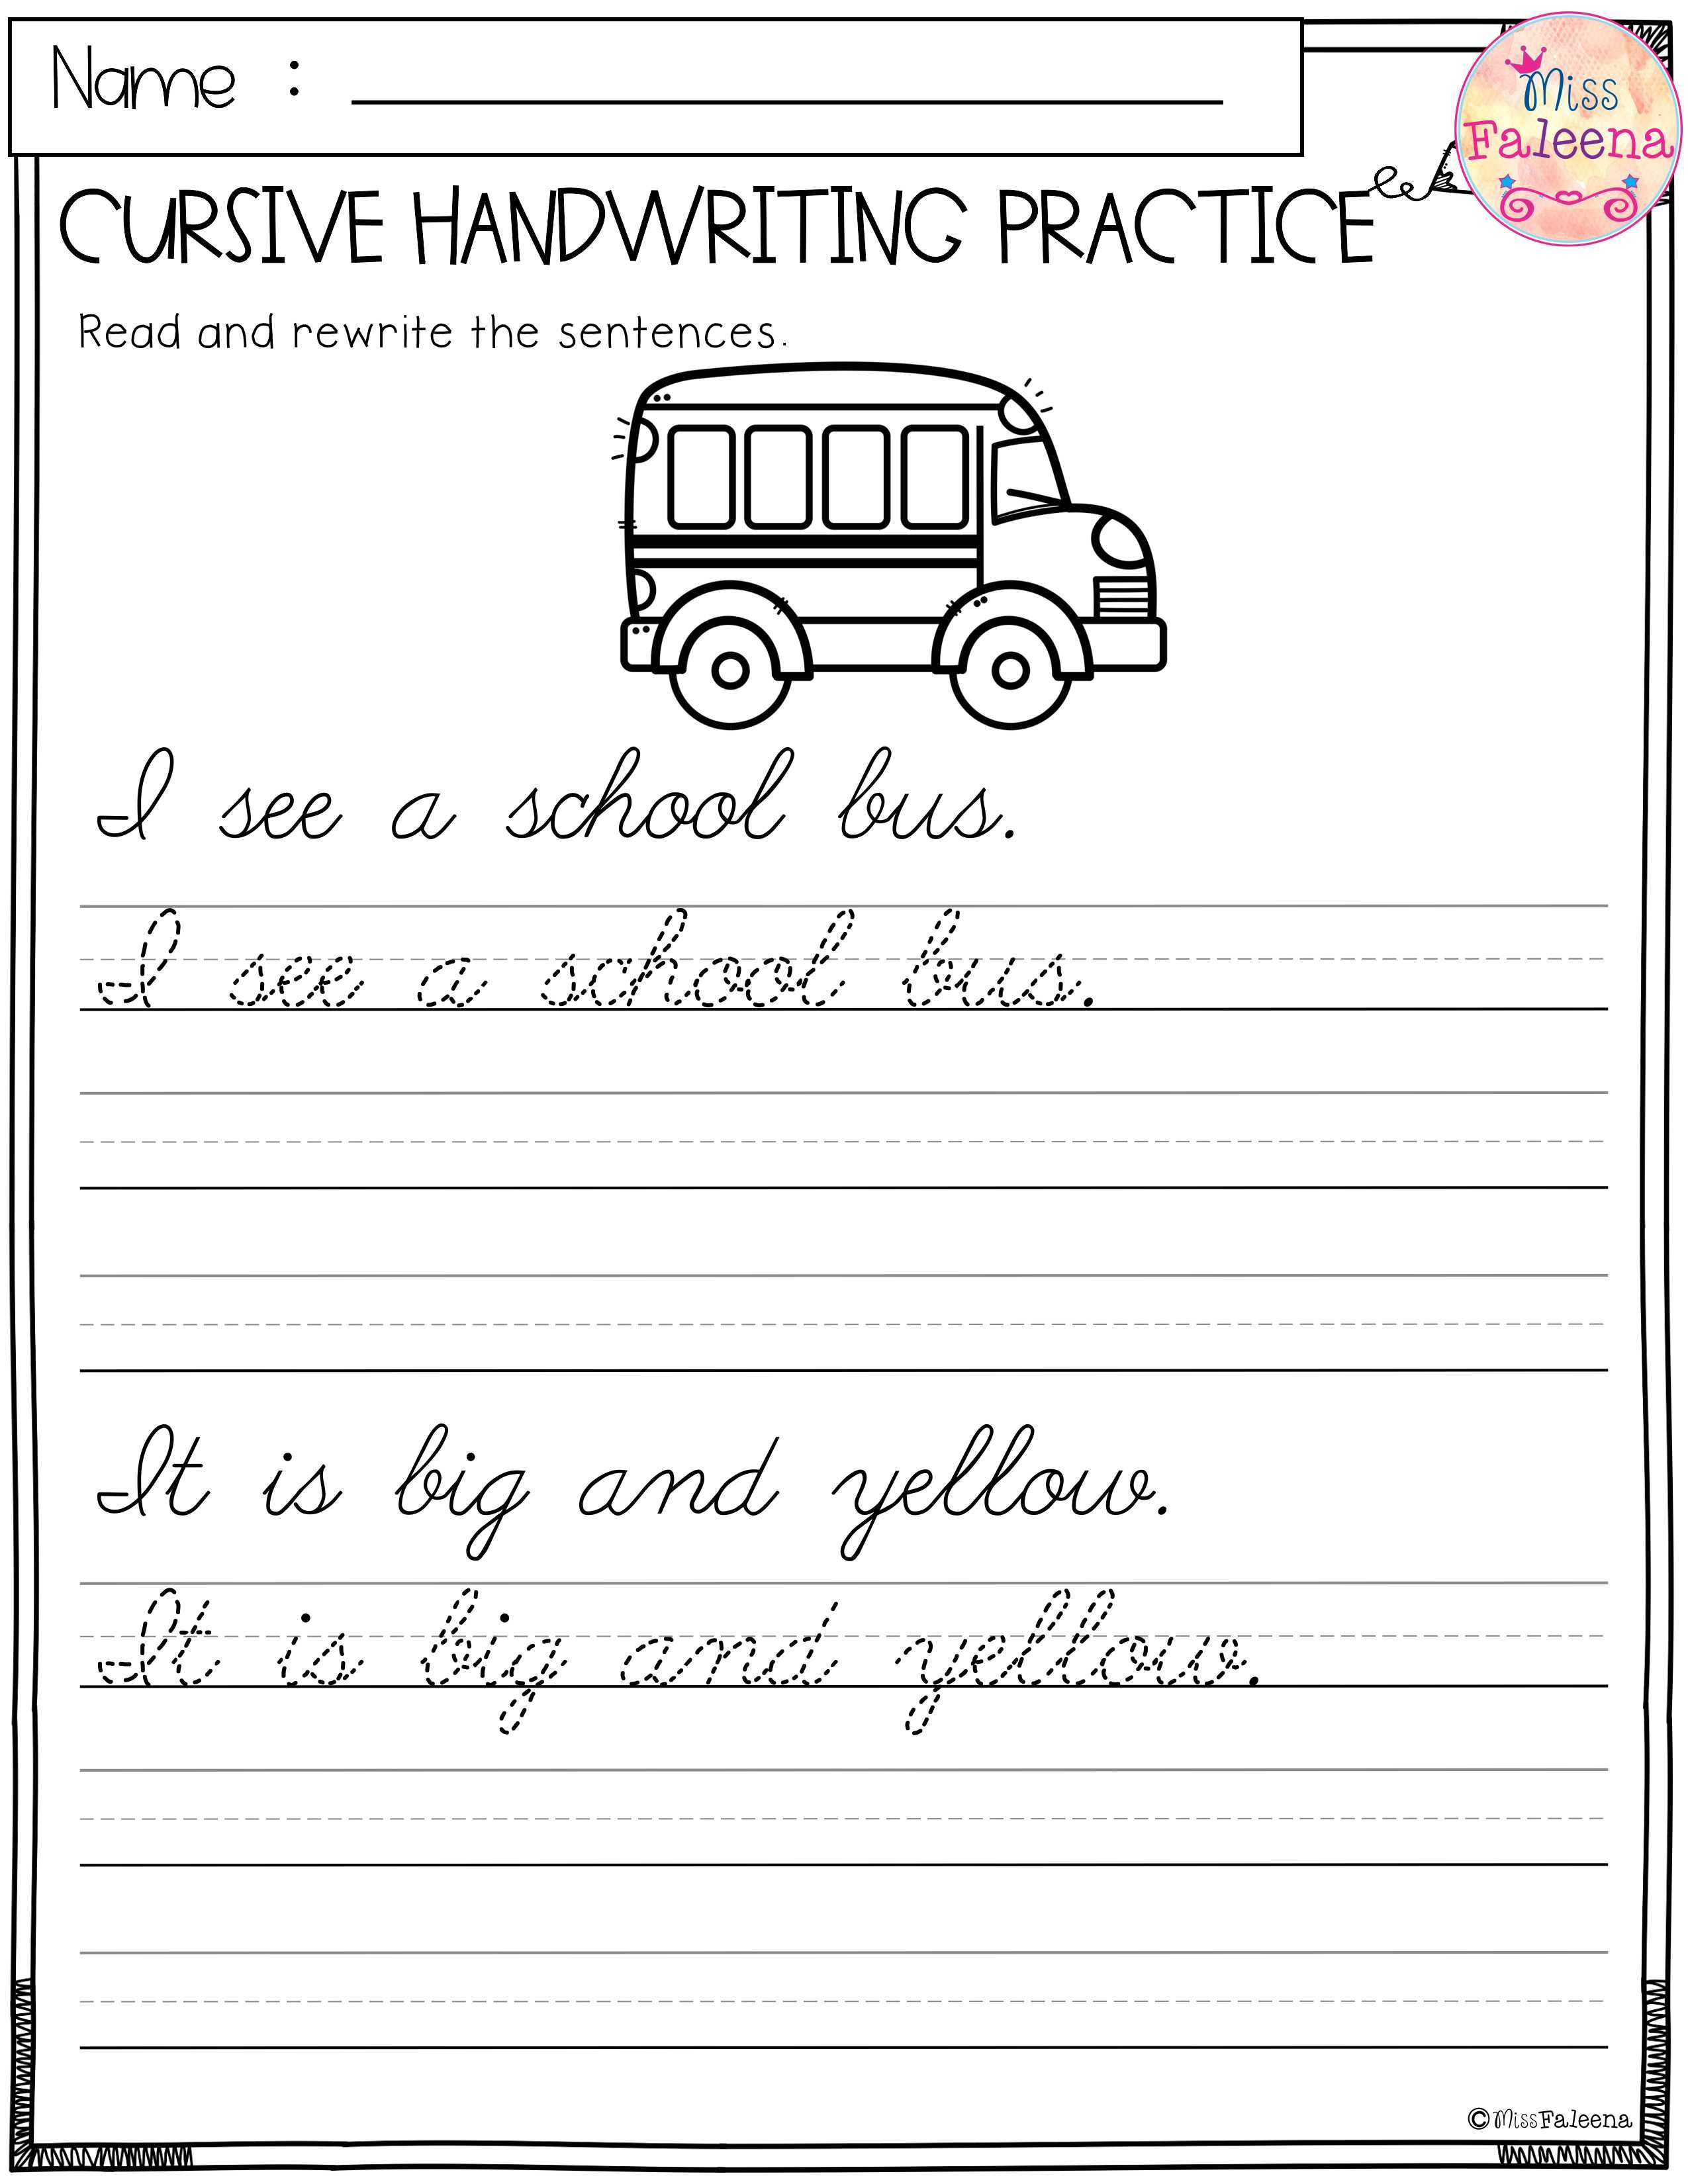 small resolution of This product has 25 pages of handwriting worksheets. This product will  teach children rea…   Cursive handwriting practice